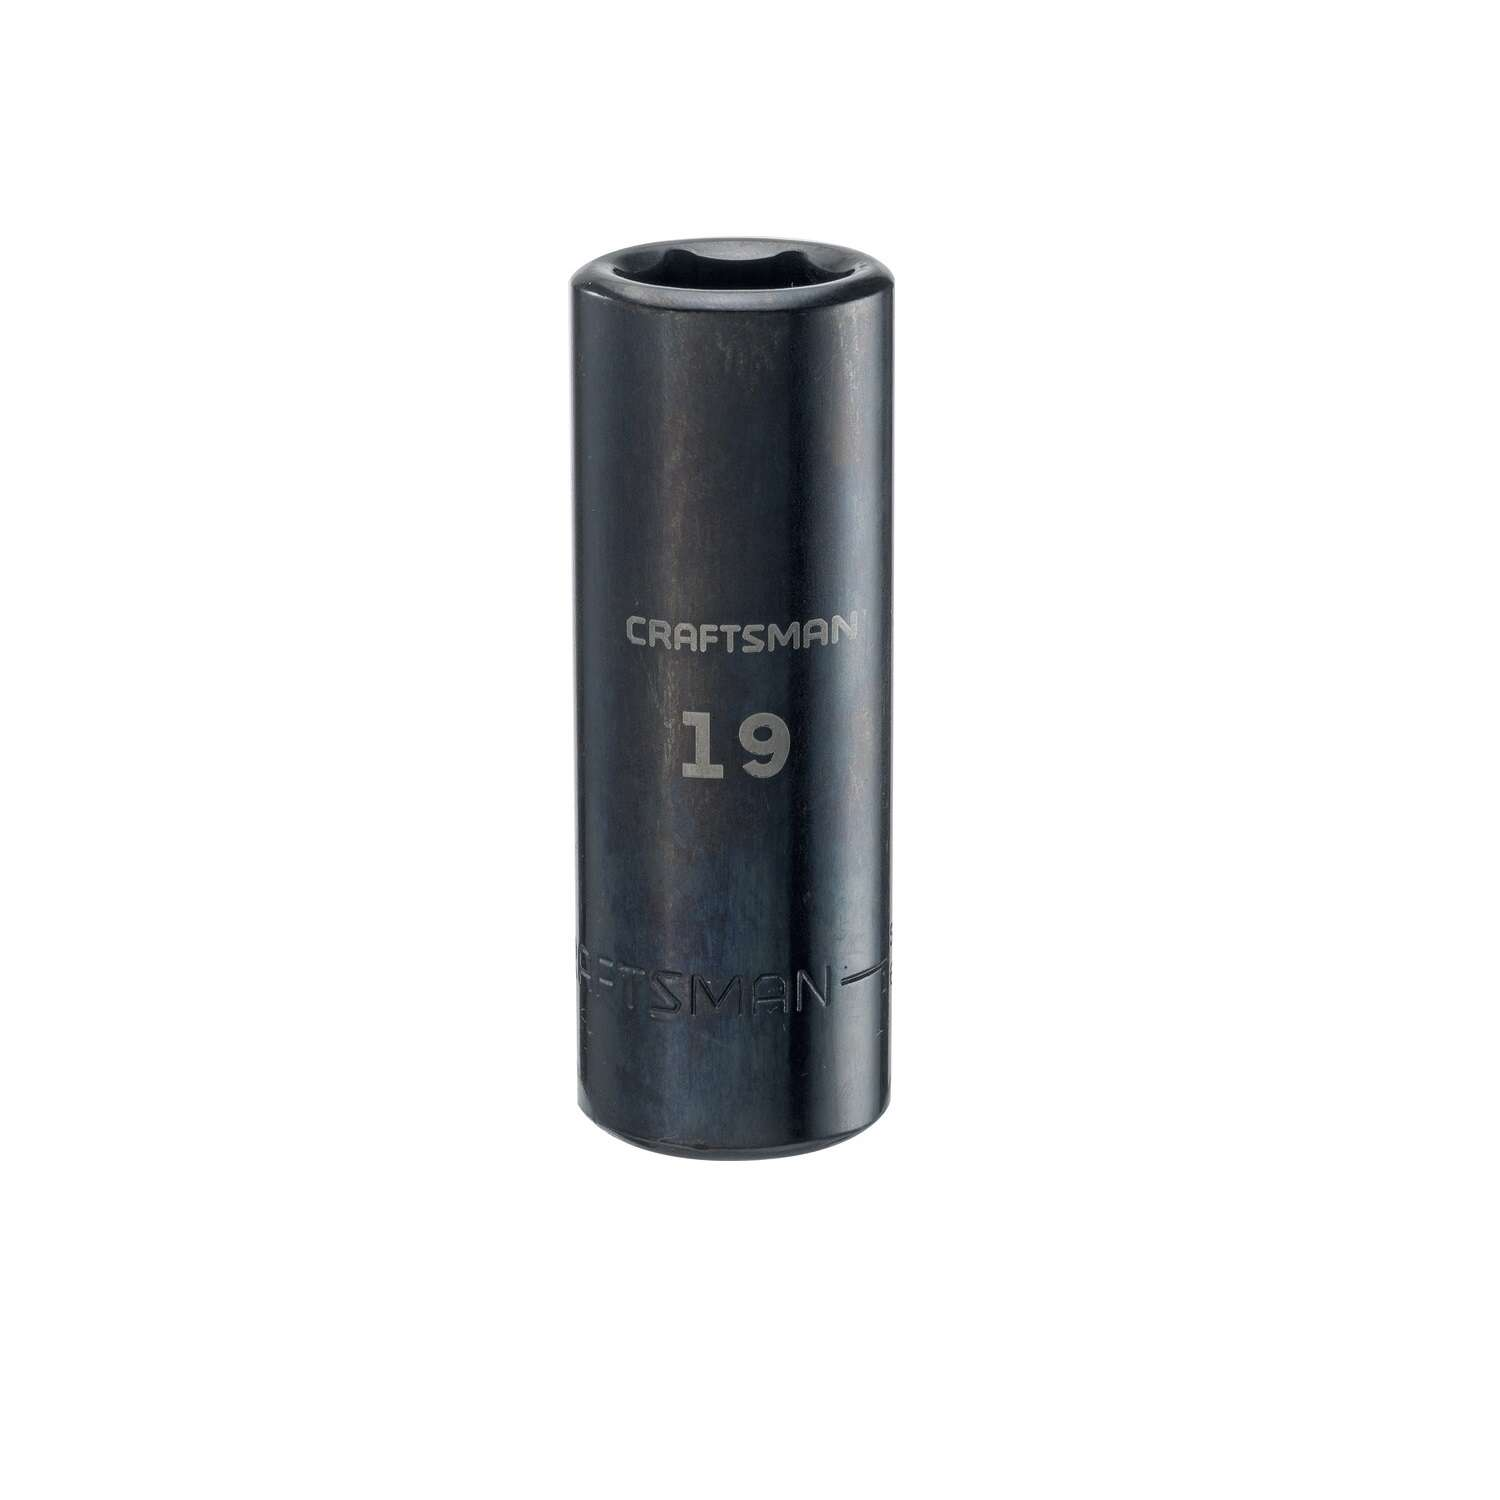 Craftsman  19 mm  x 1/2 in. drive  Metric  6 Point Deep  Deep Impact Socket  1 pc.